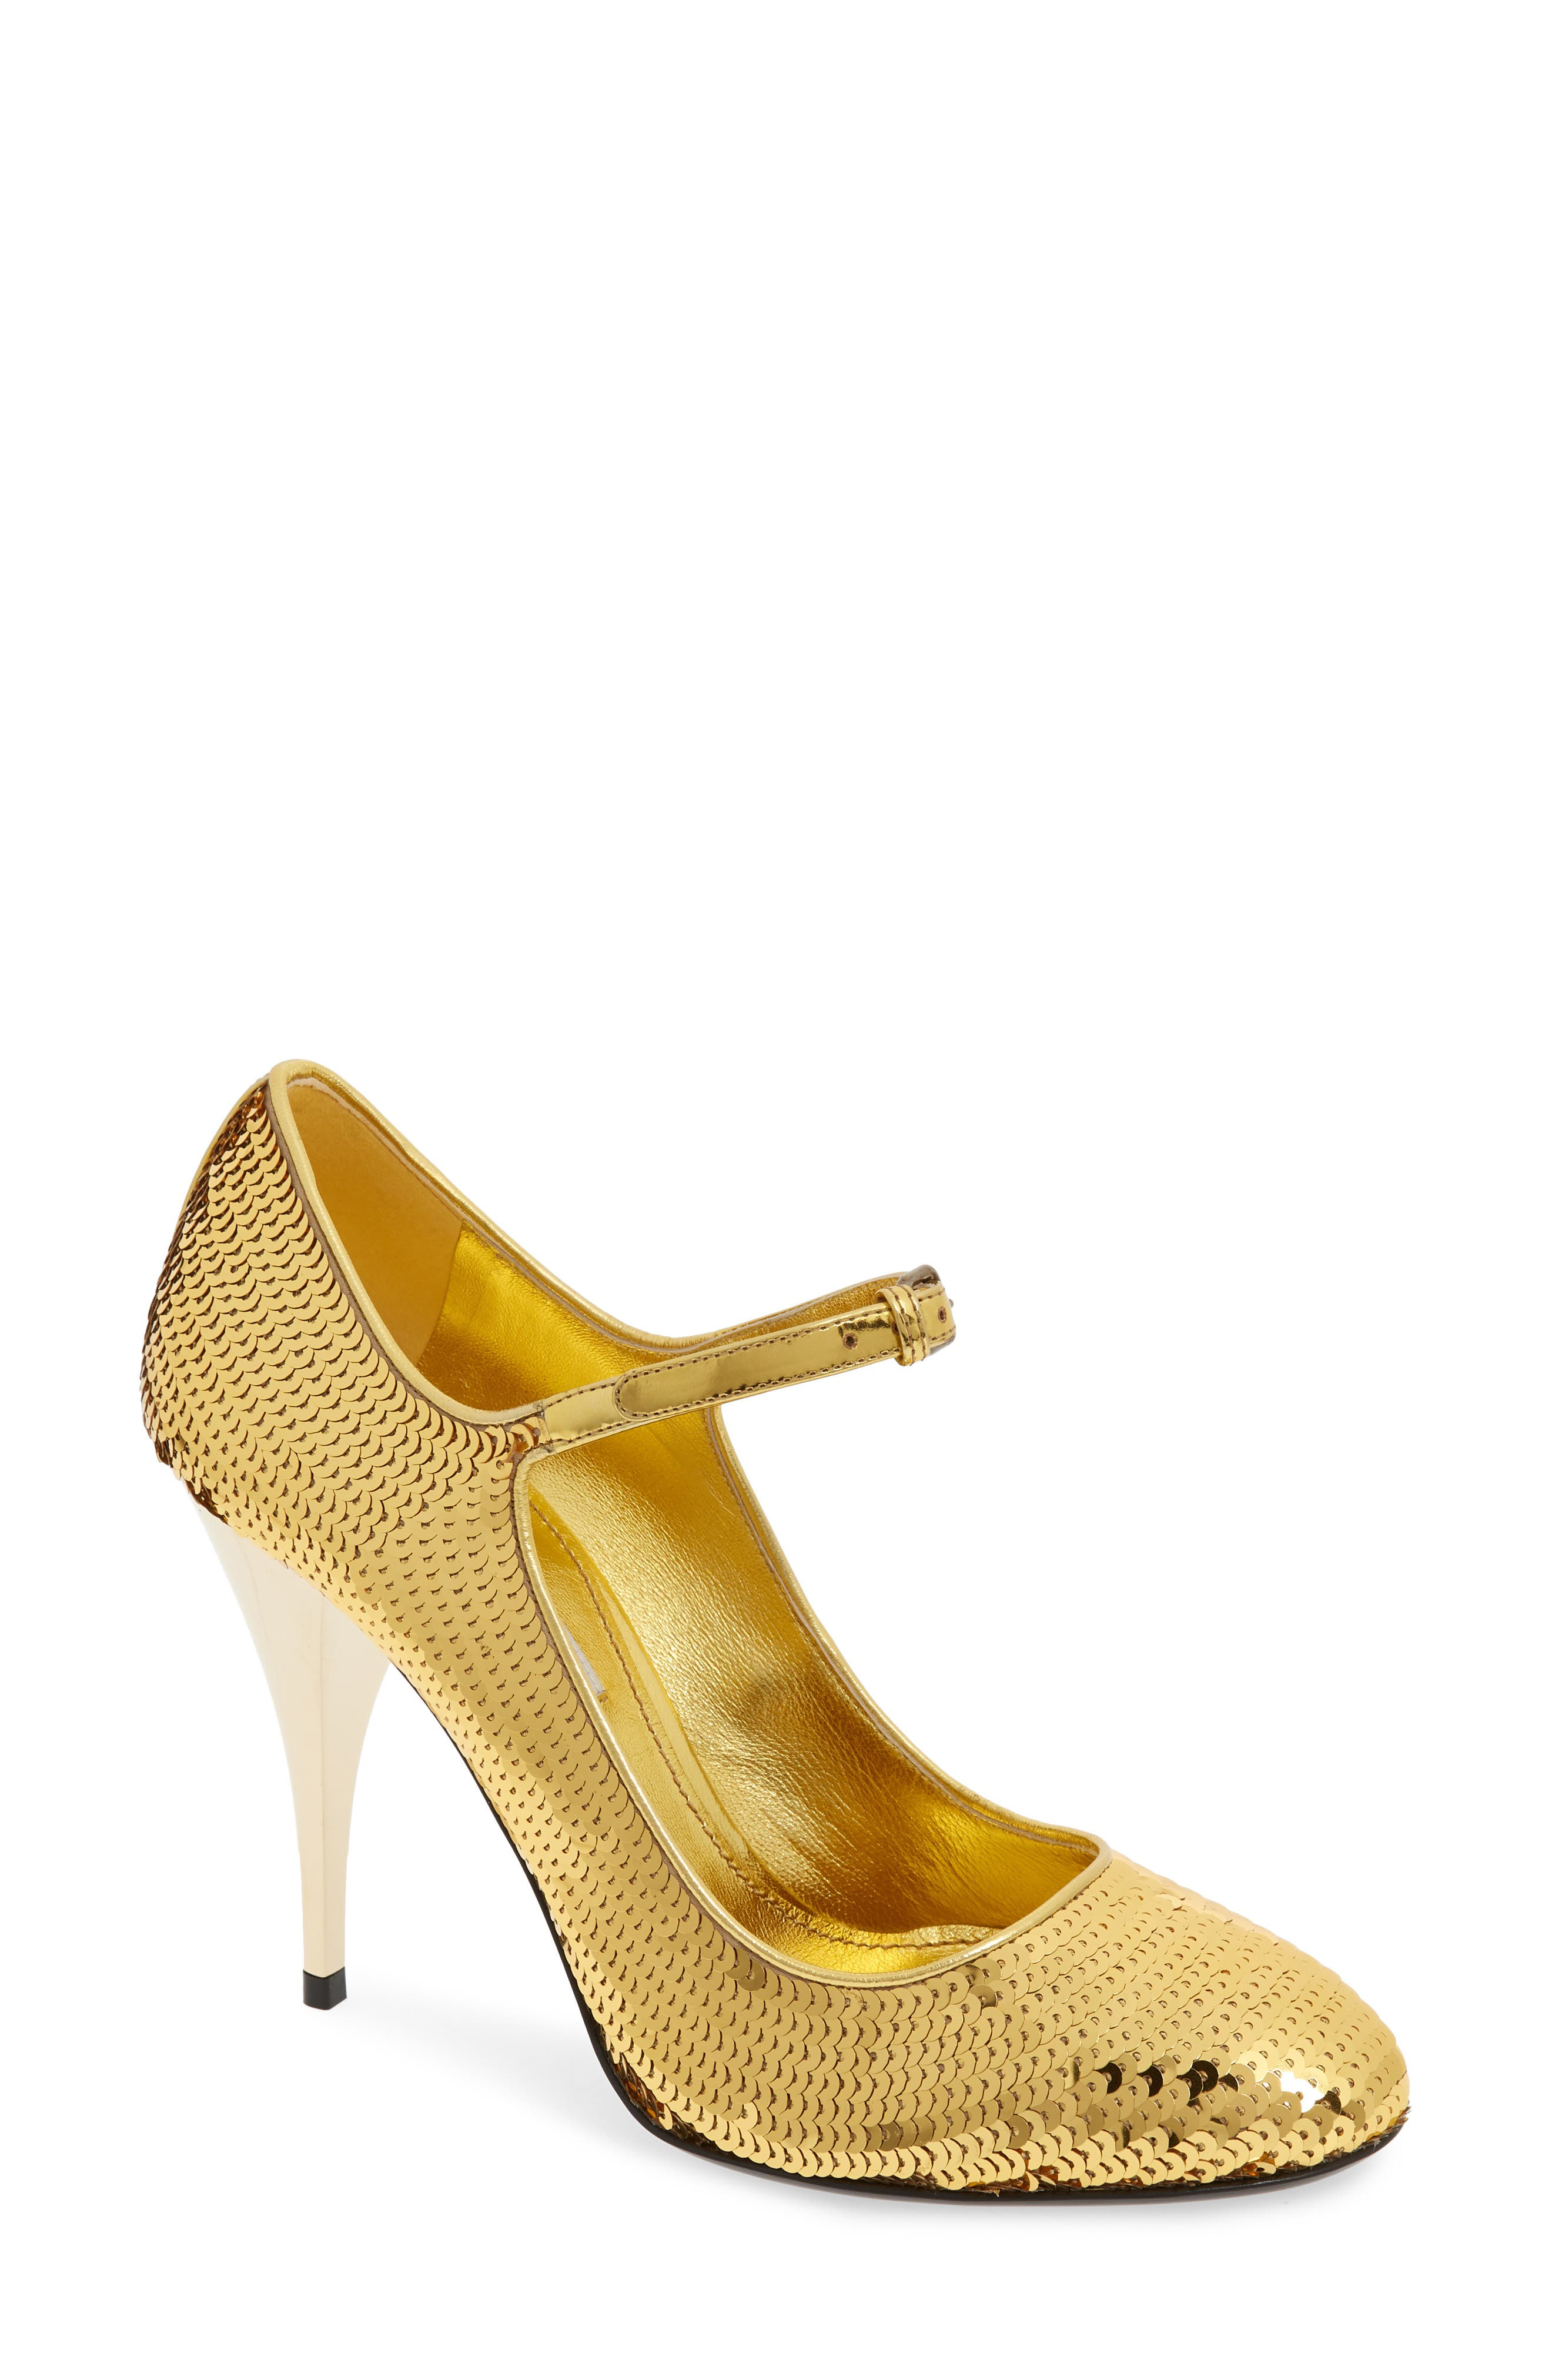 Sequin Mary Jane Pump,                             Main thumbnail 1, color,                             GOLD